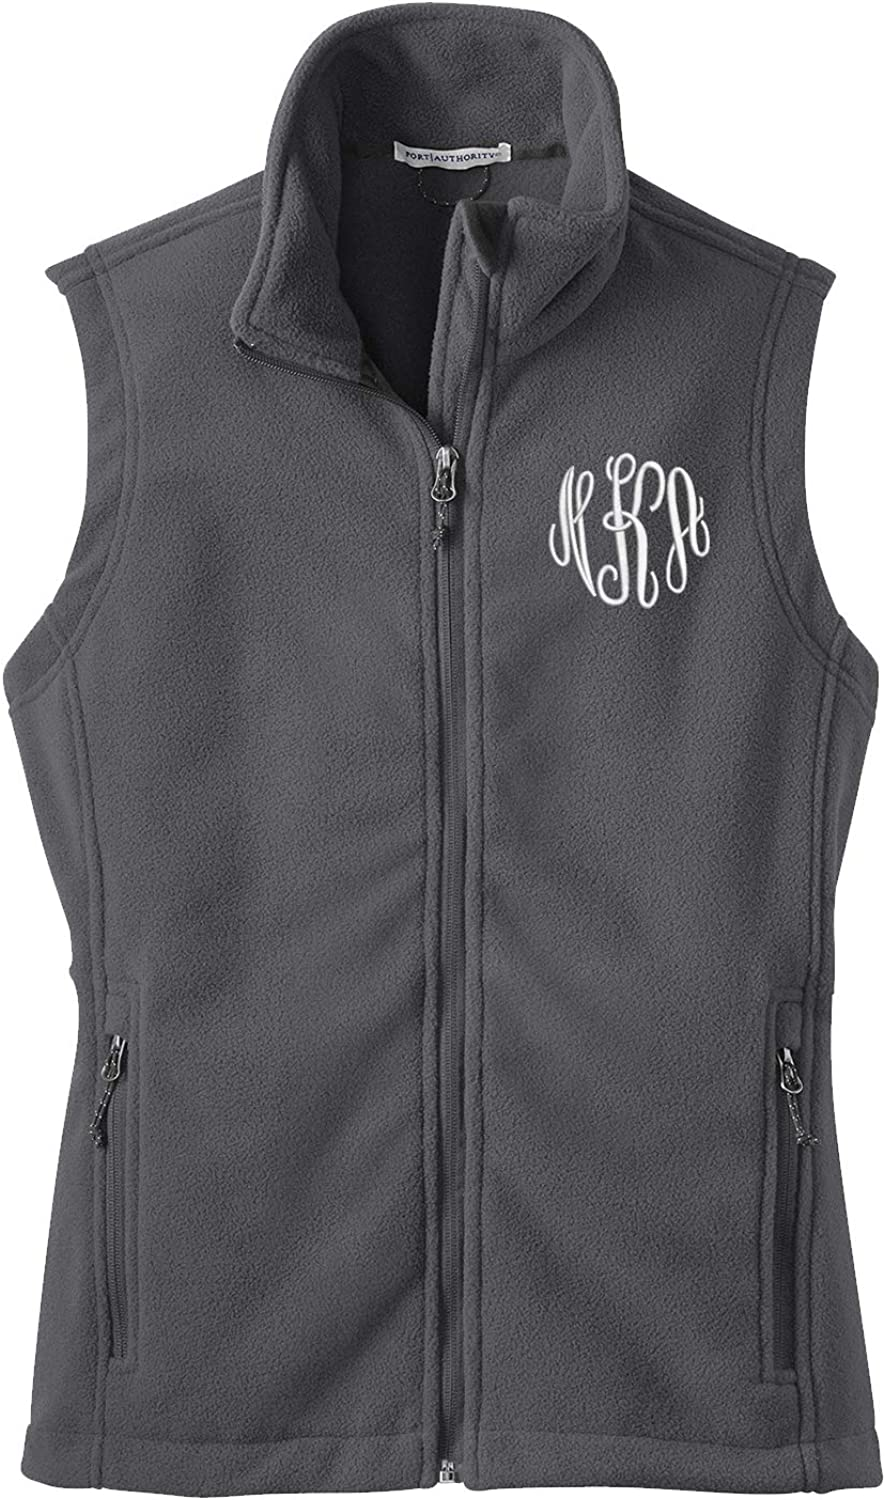 Ladies Monogrammed Fleece Vest in Sale price Personalized Manufacturer direct delivery - Gre